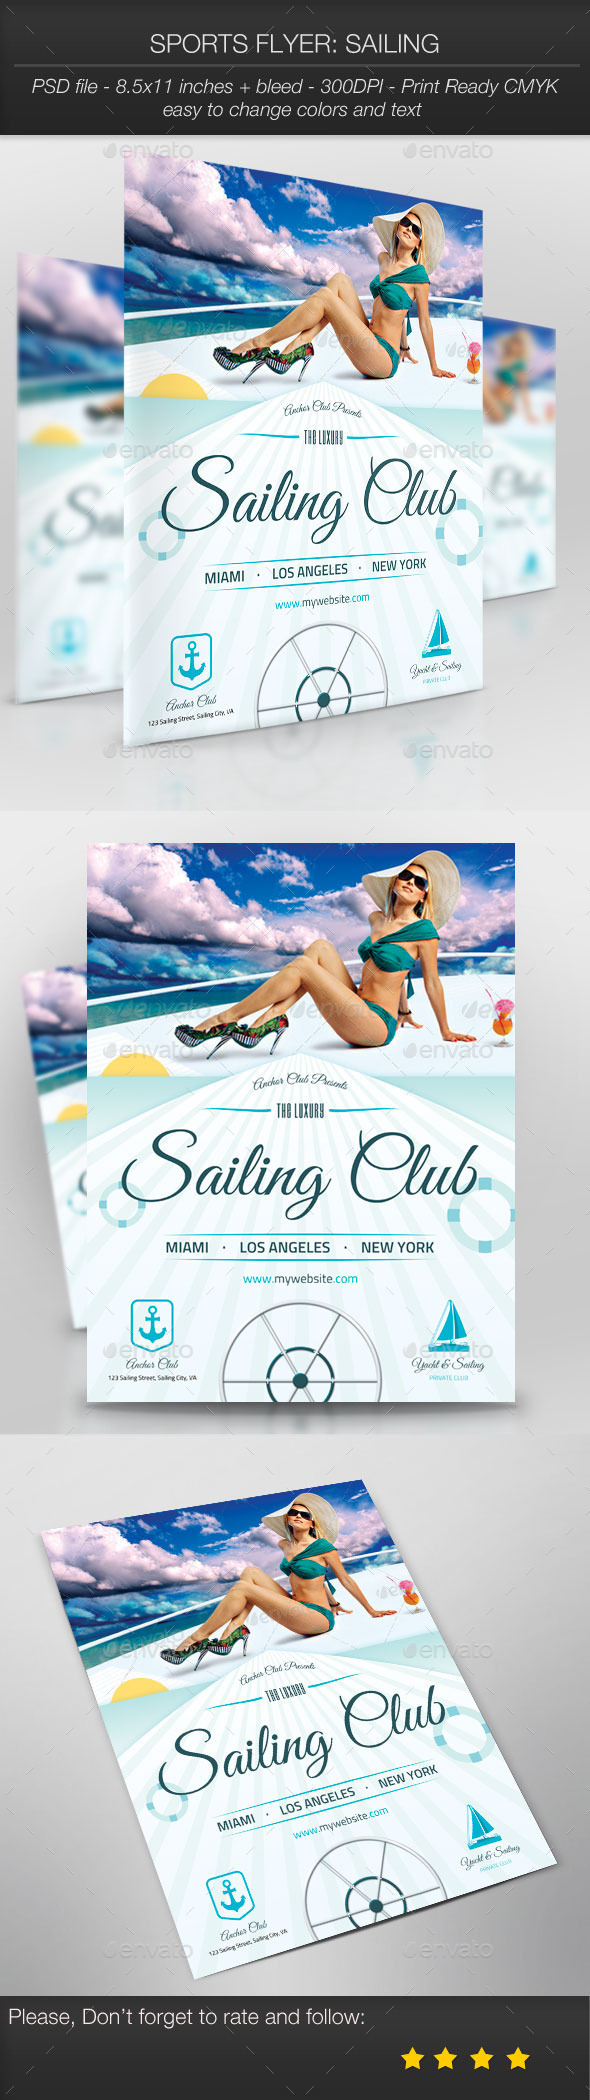 GraphicRiver Sports Flyer Sailing 9994321